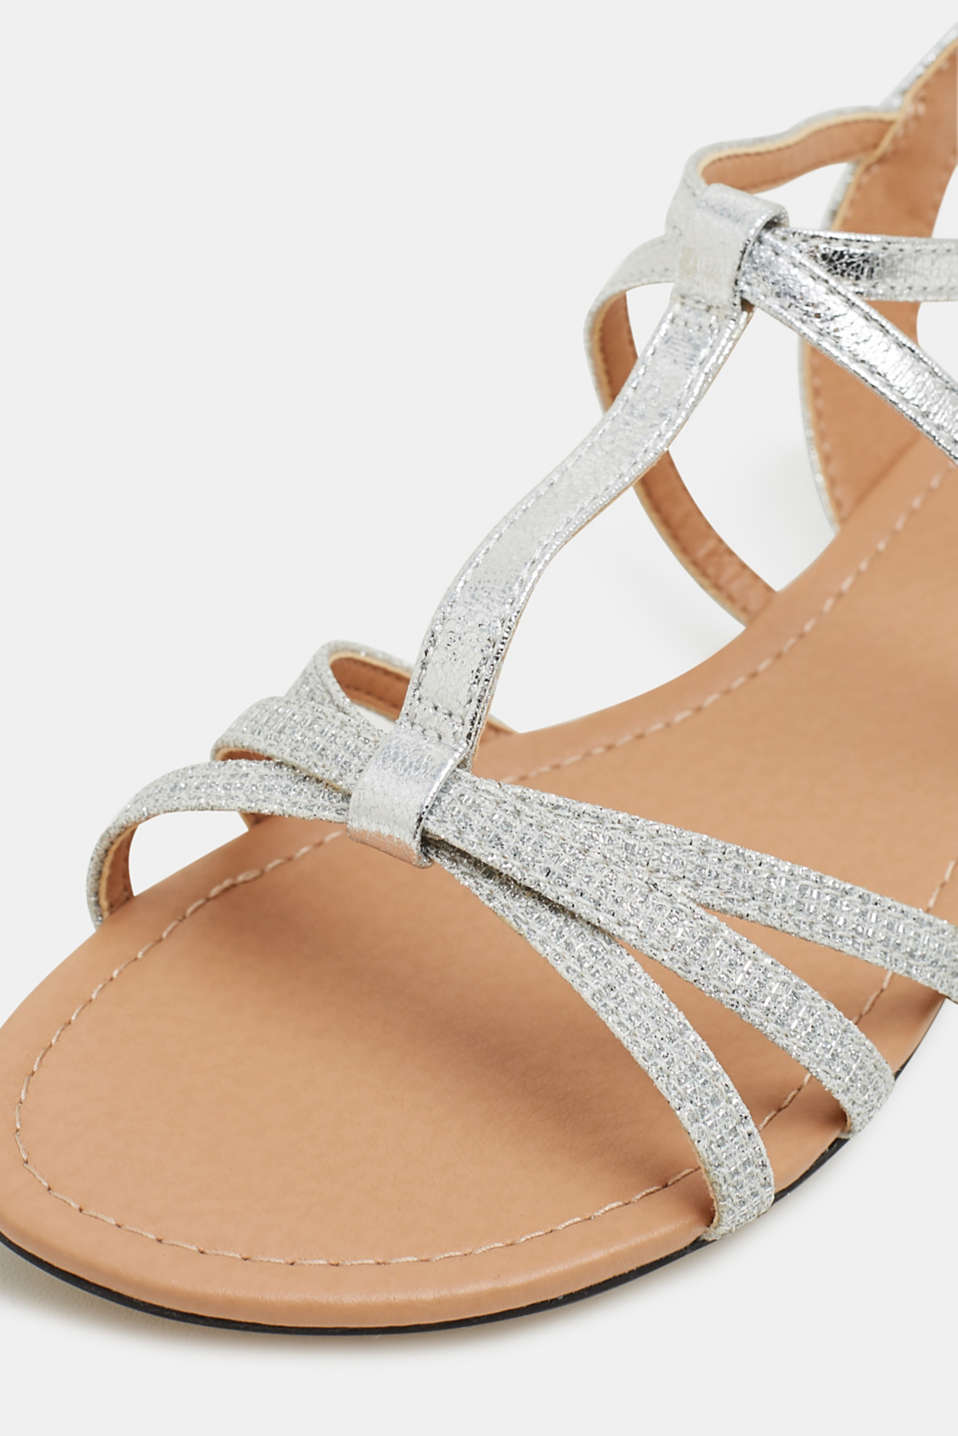 Sandals with glitter, in faux leather, SILVER, detail image number 4